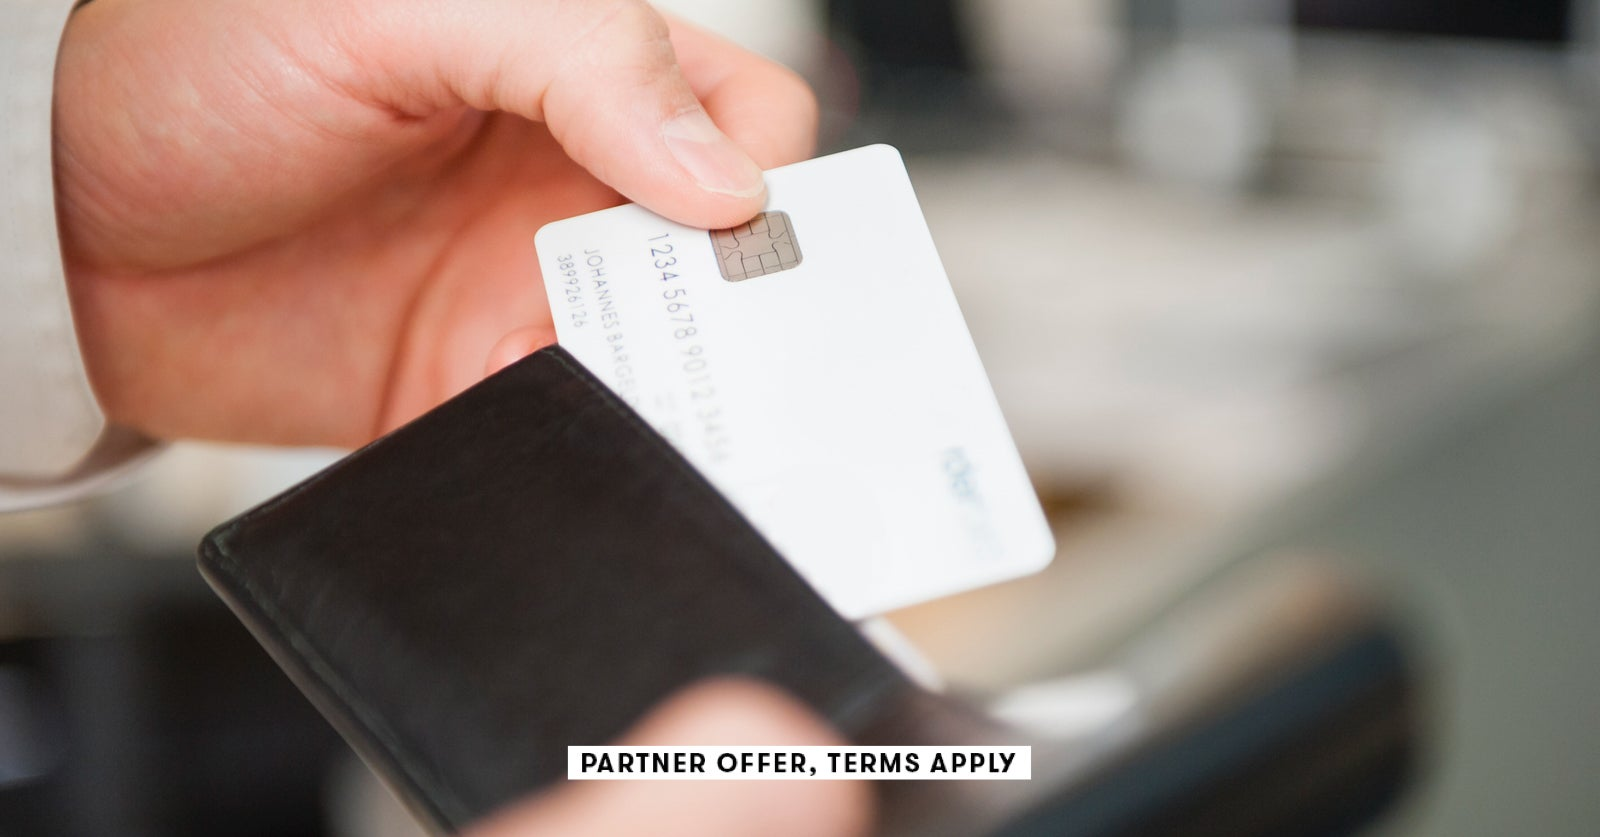 Best credit cards with the highest credit limits in 2021